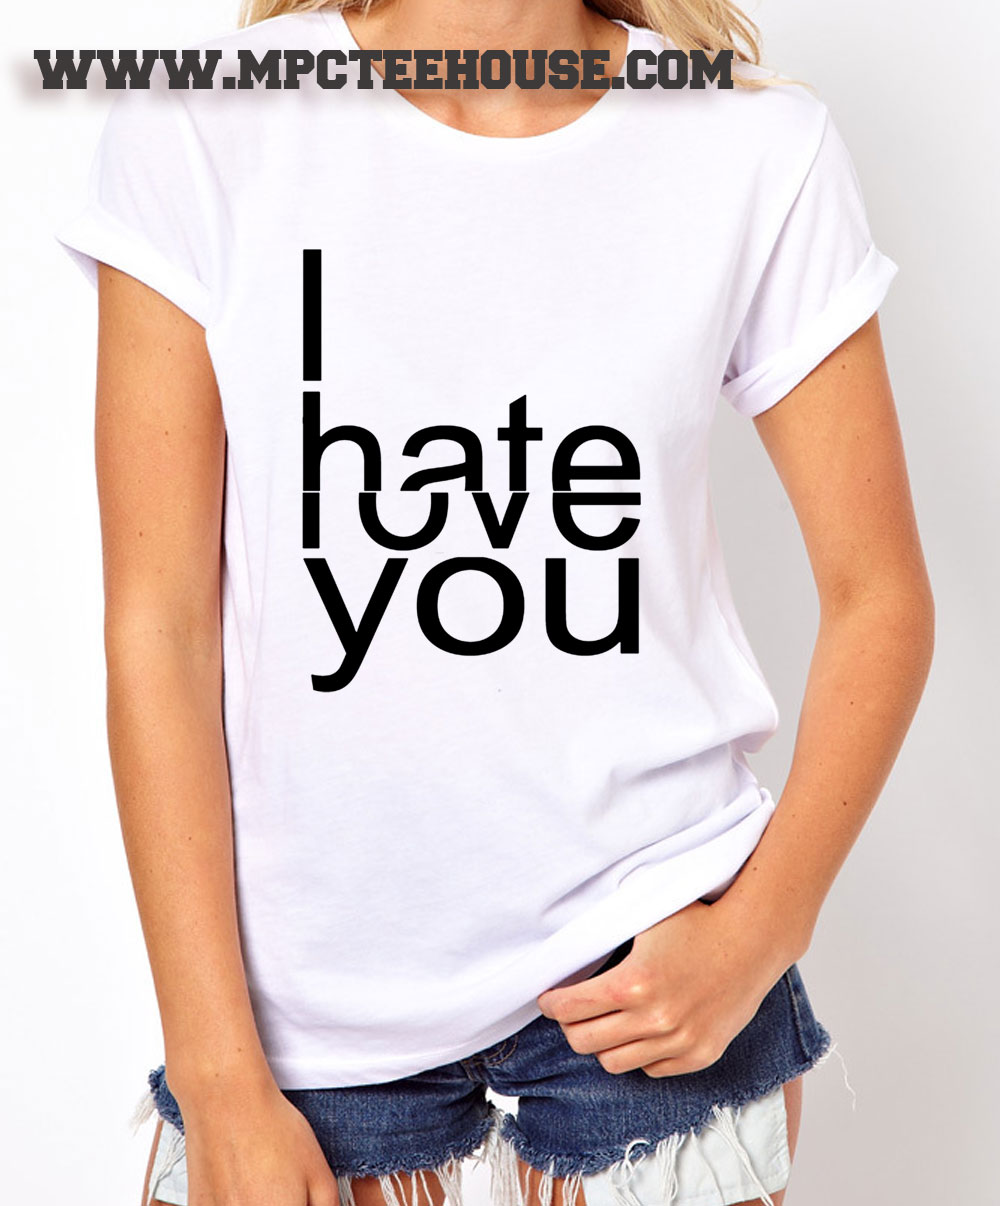 I hate love you quote t shirt mpcteehouse for I love you t shirts